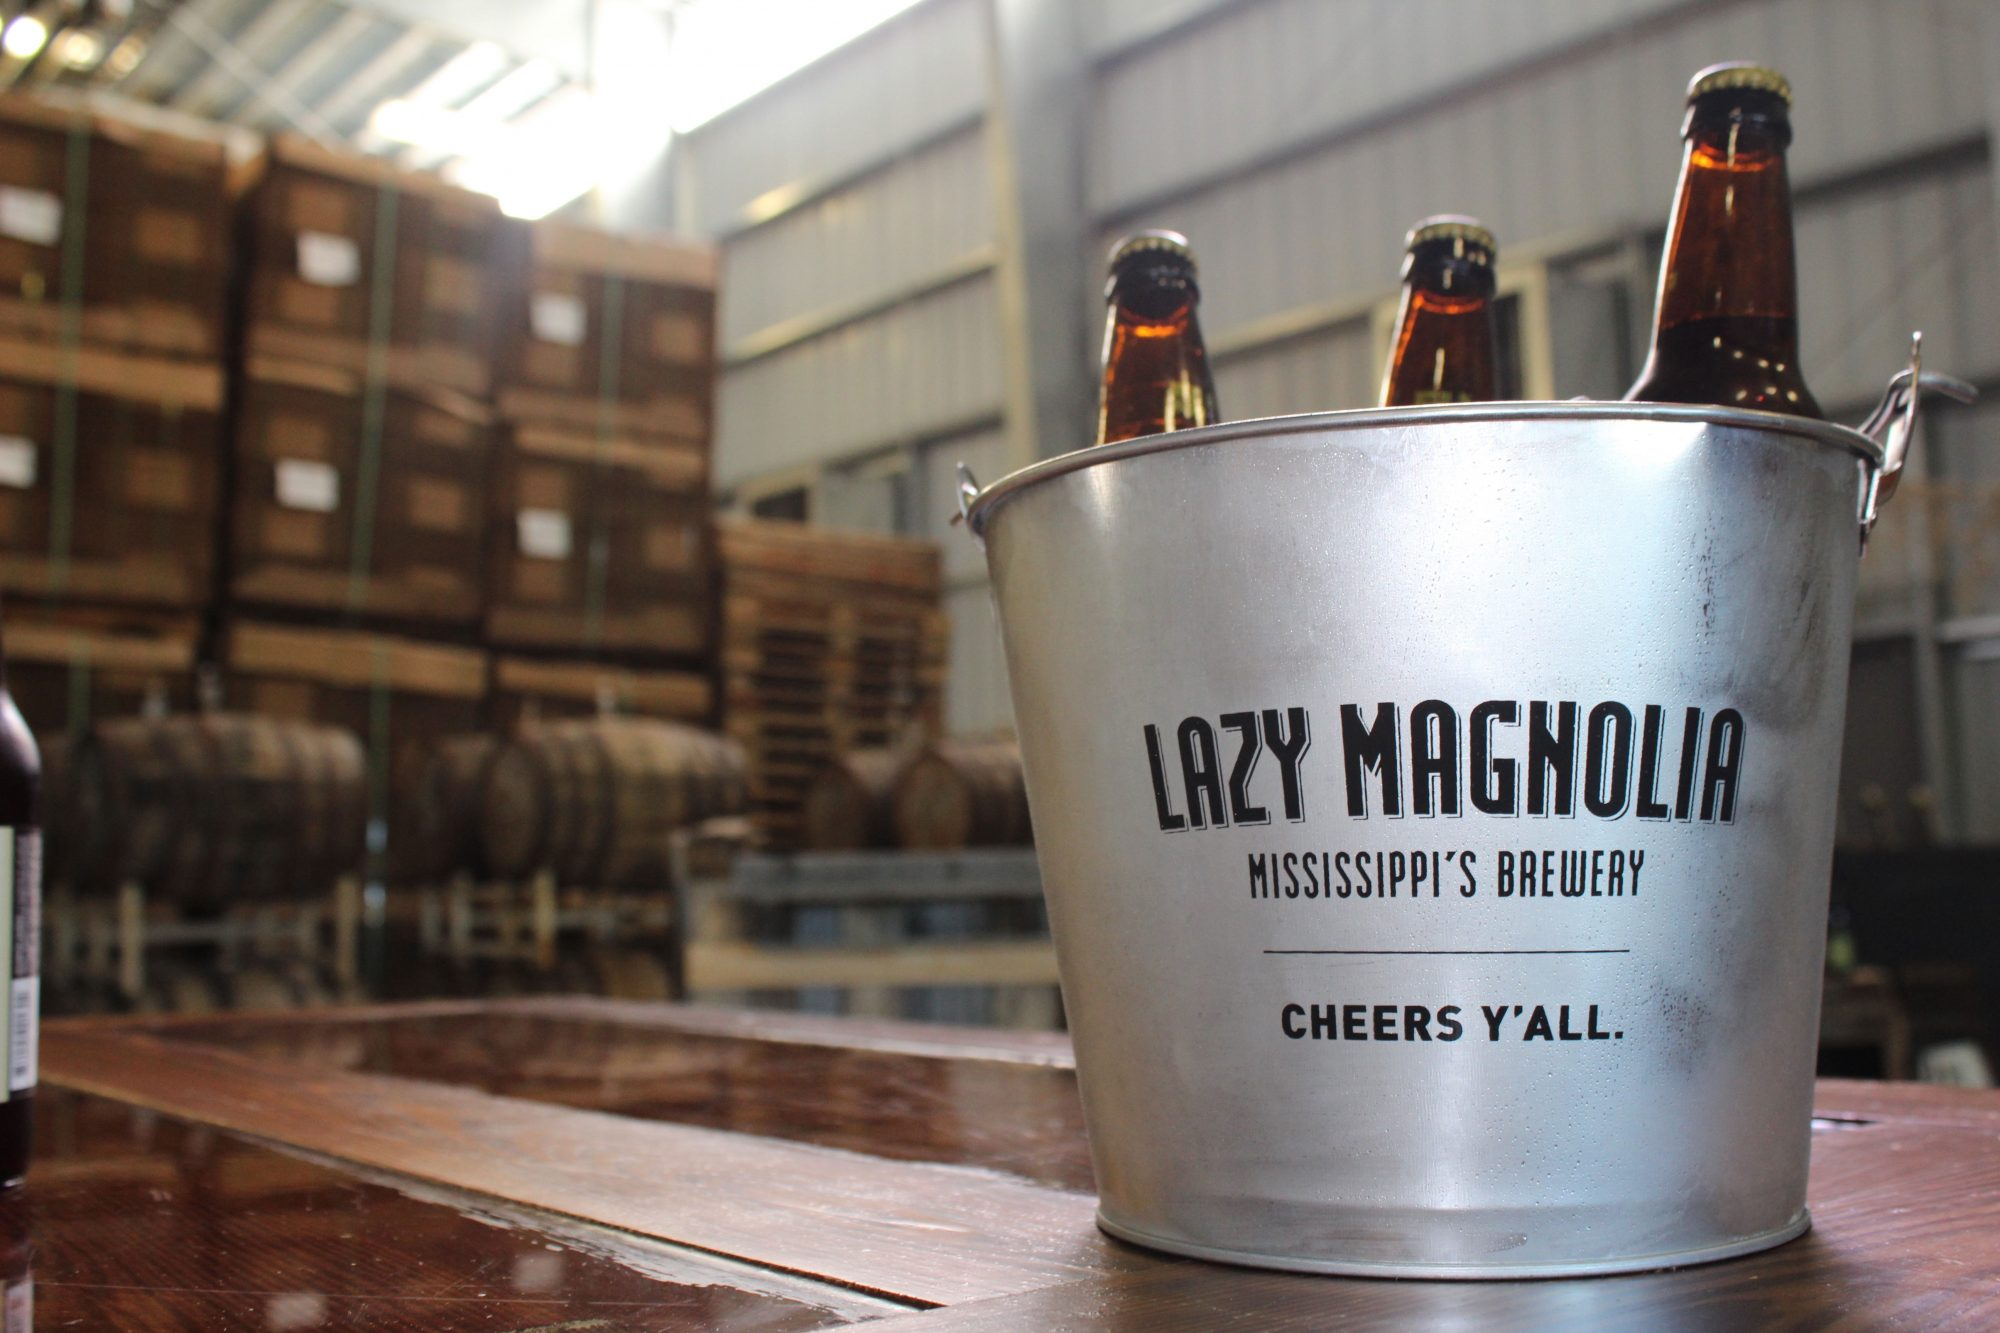 Lazy Magnolia Brewery Mississippi